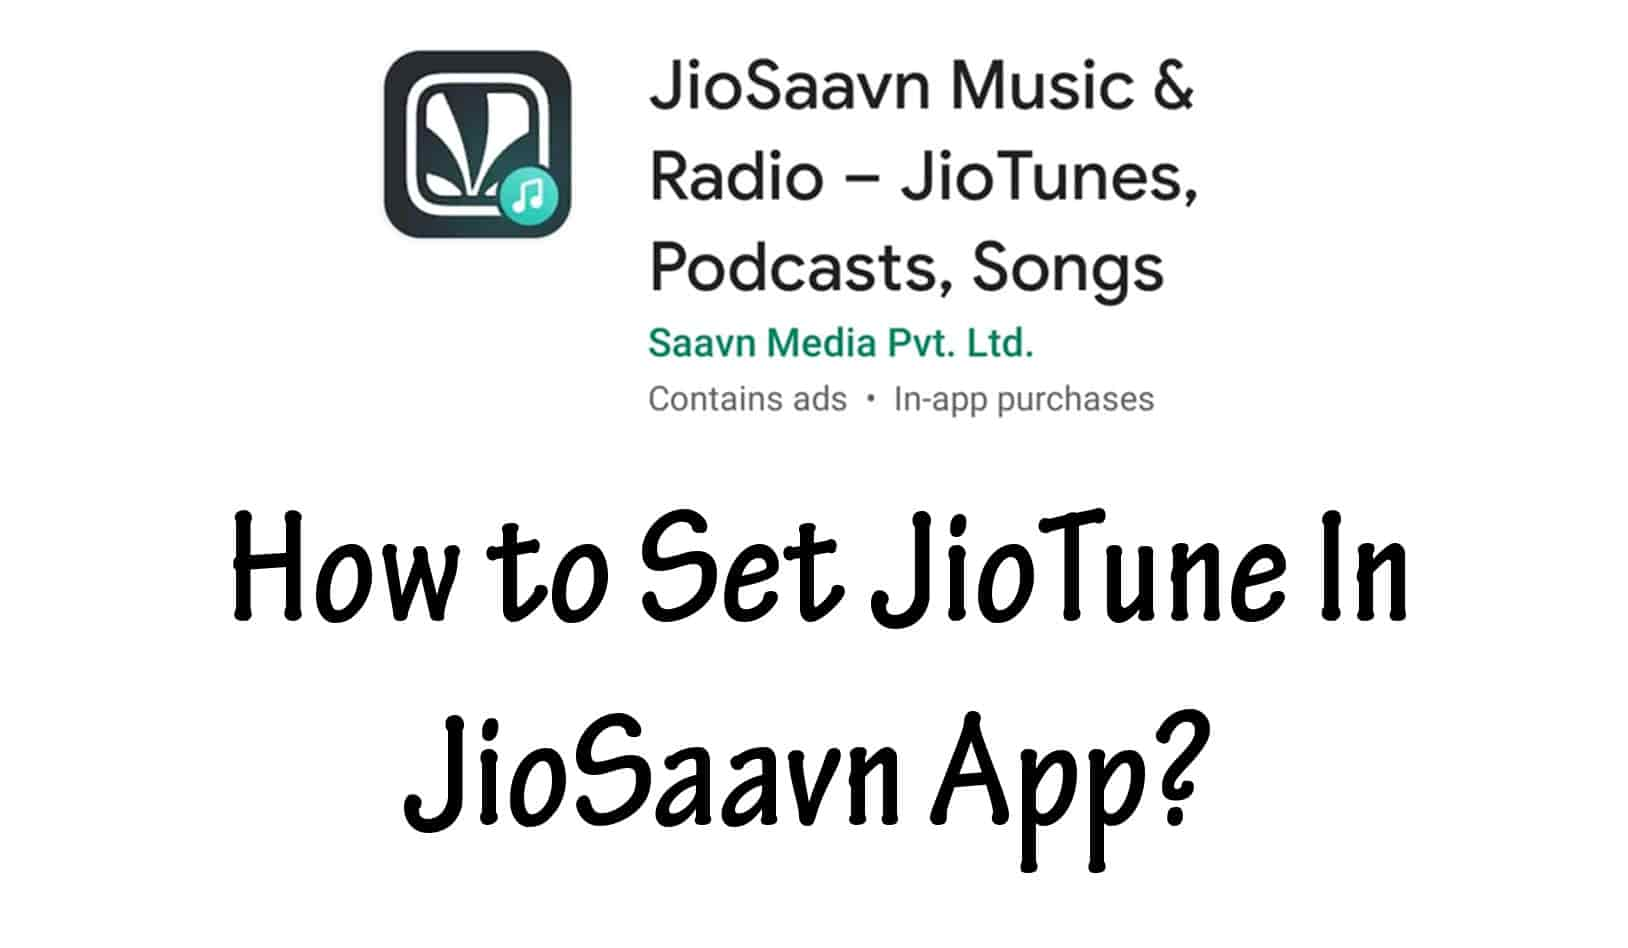 How to Set JioTune In JioSaavn App